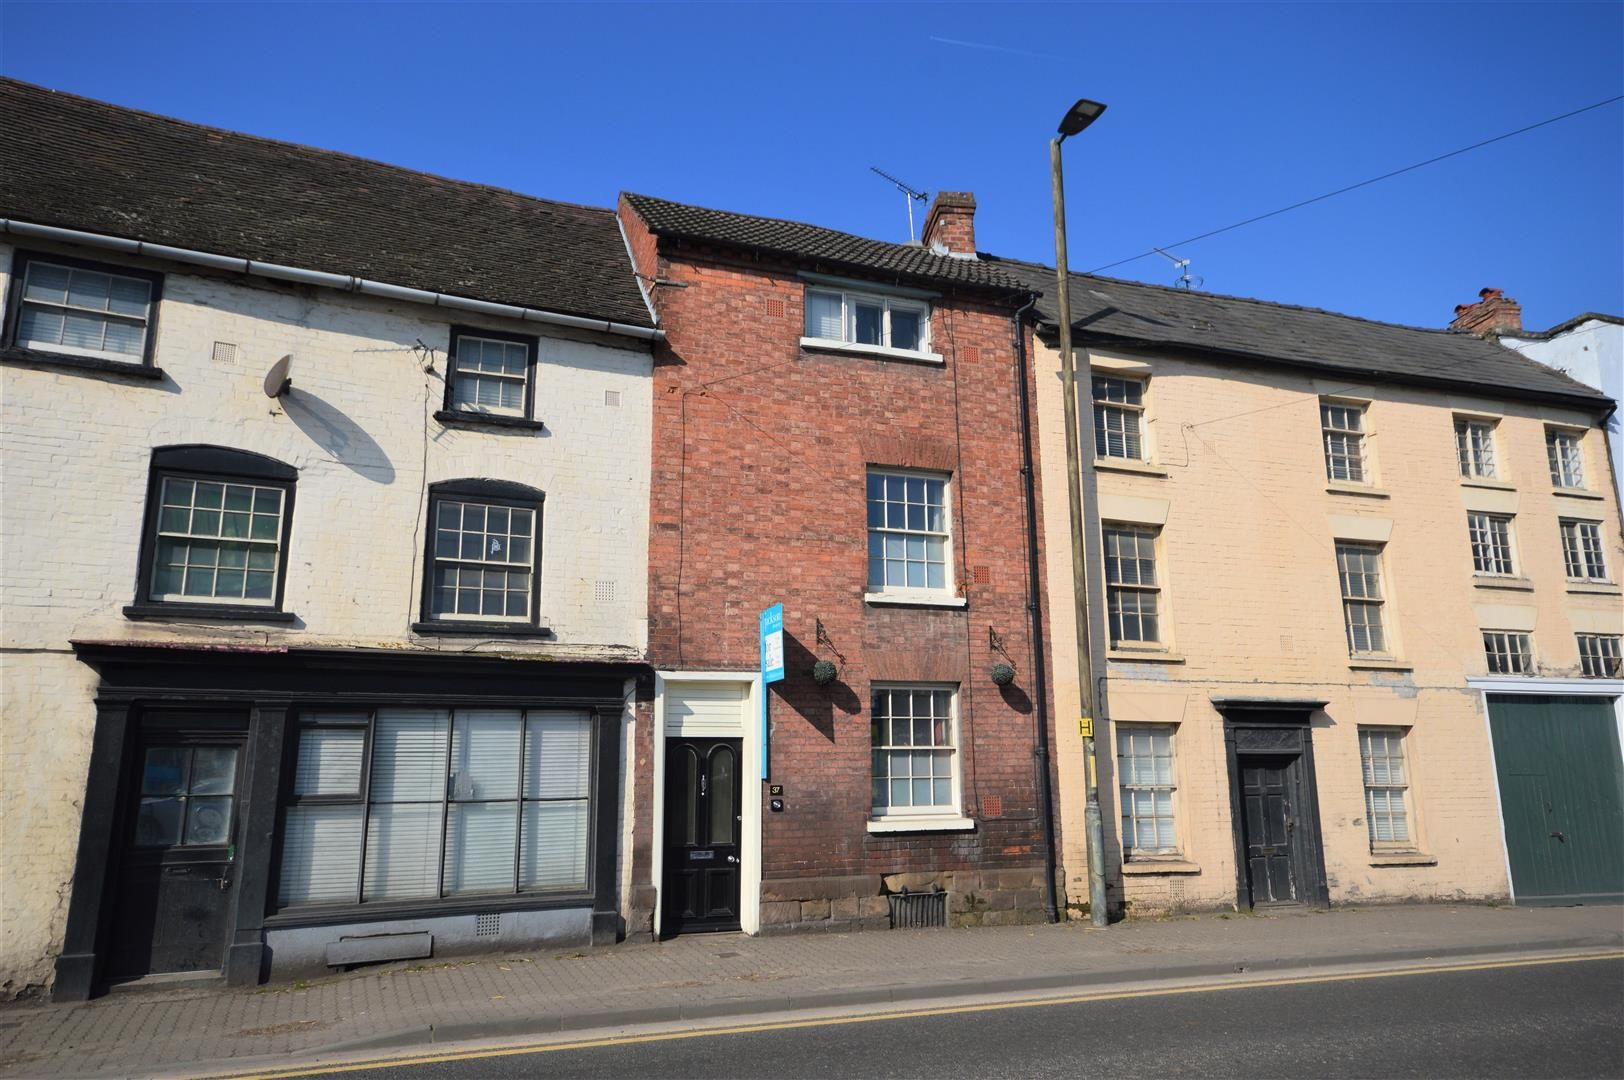 5 bed town house for sale in Leominster, HR6